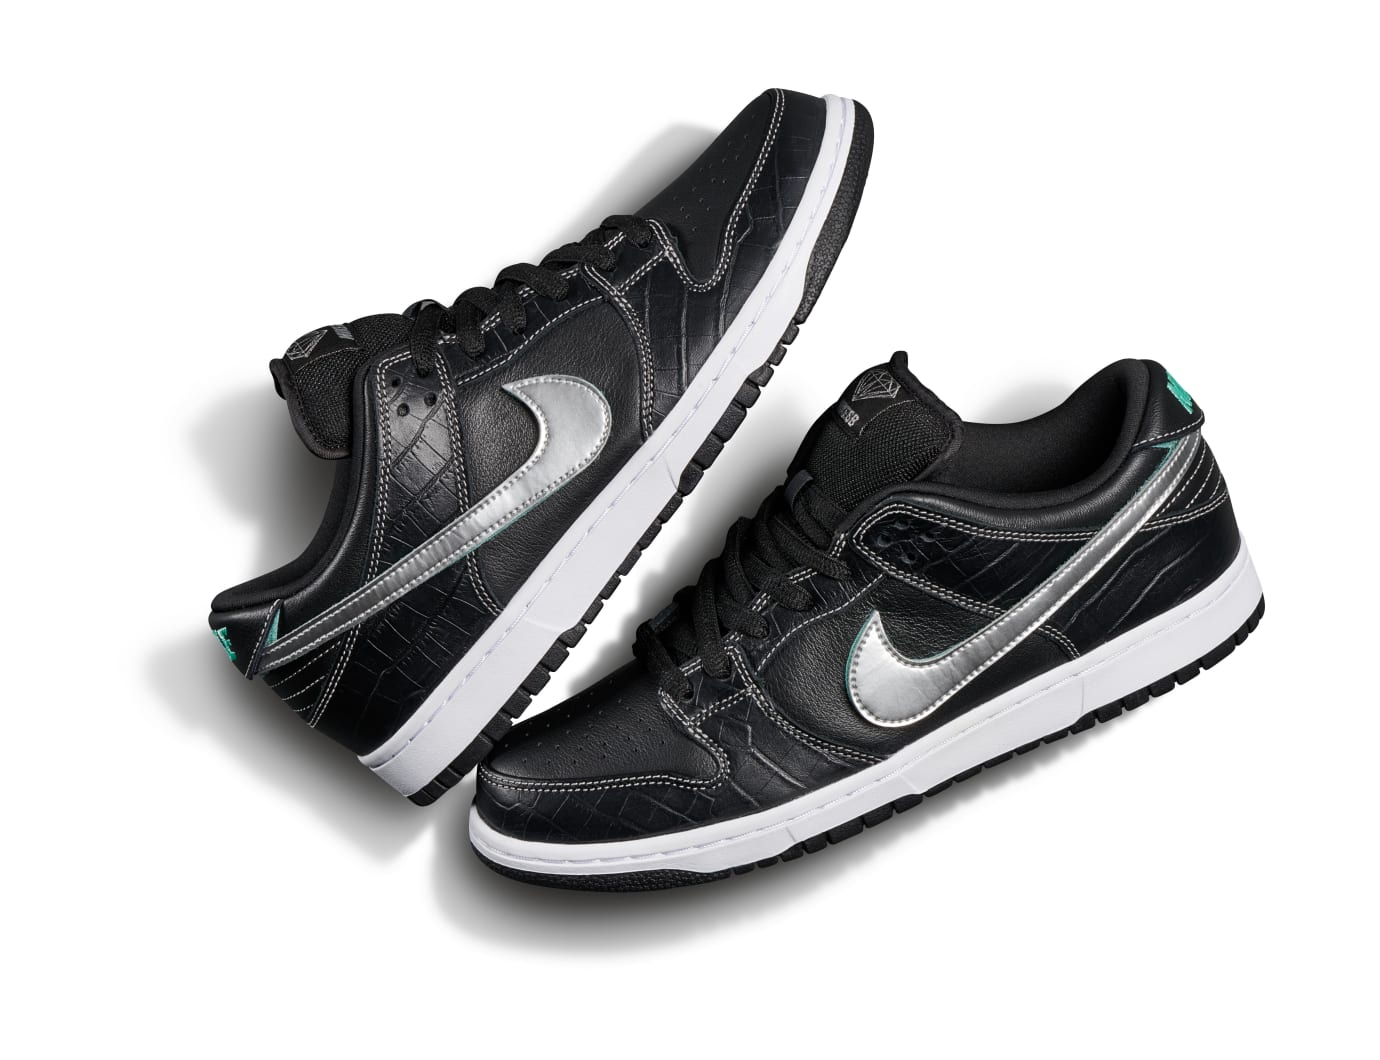 Diamond Supply Co. x Nike SB Dunk Low 'Black' (Pair)